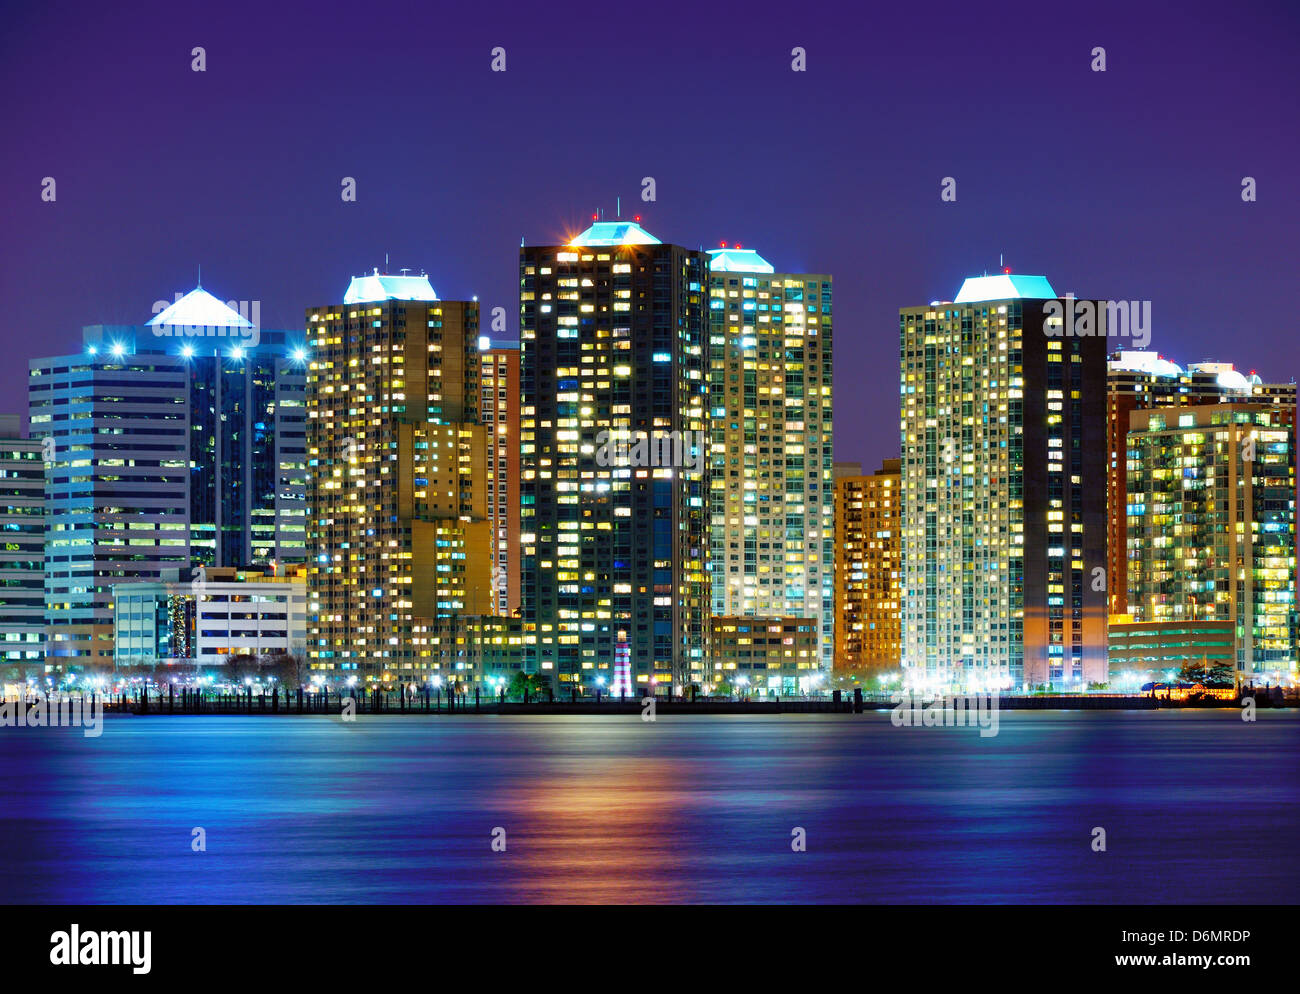 Office buildings in Exchange Place, Jersey City, New Jersey - Stock Image